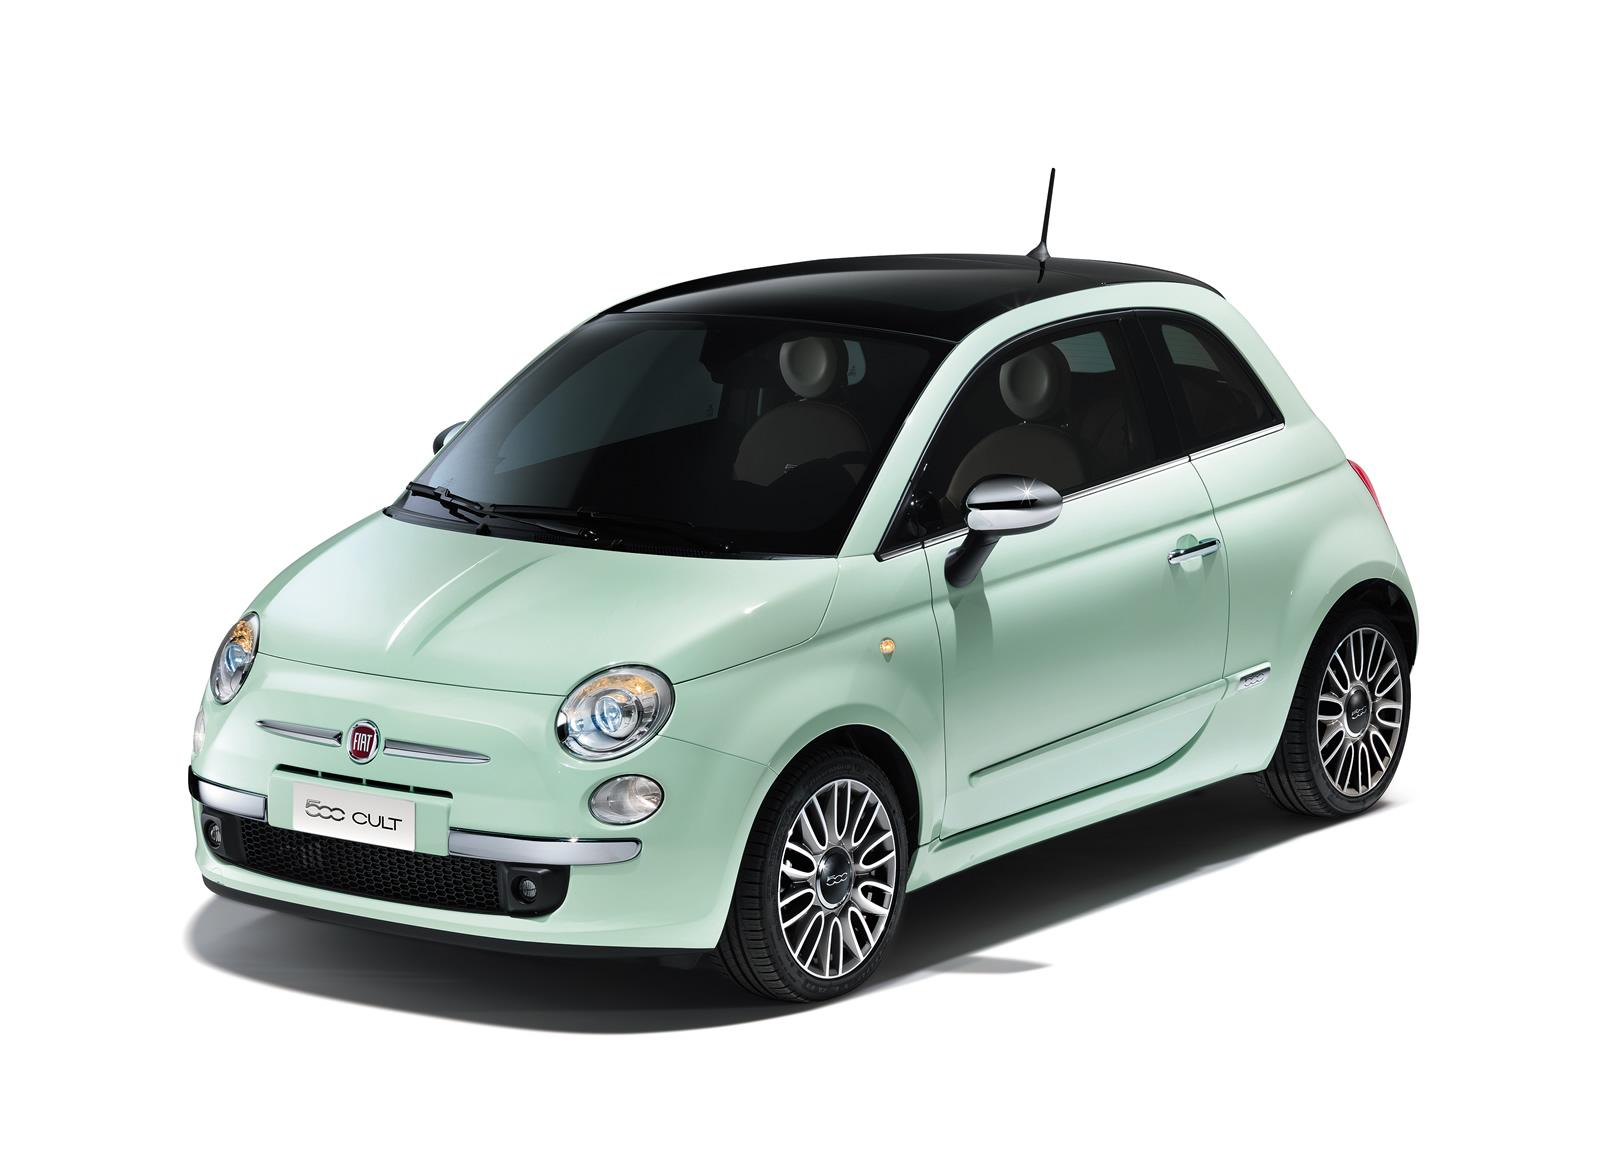 2014 Fiat 500 updates come with new 105 HP engine | Autonews 1